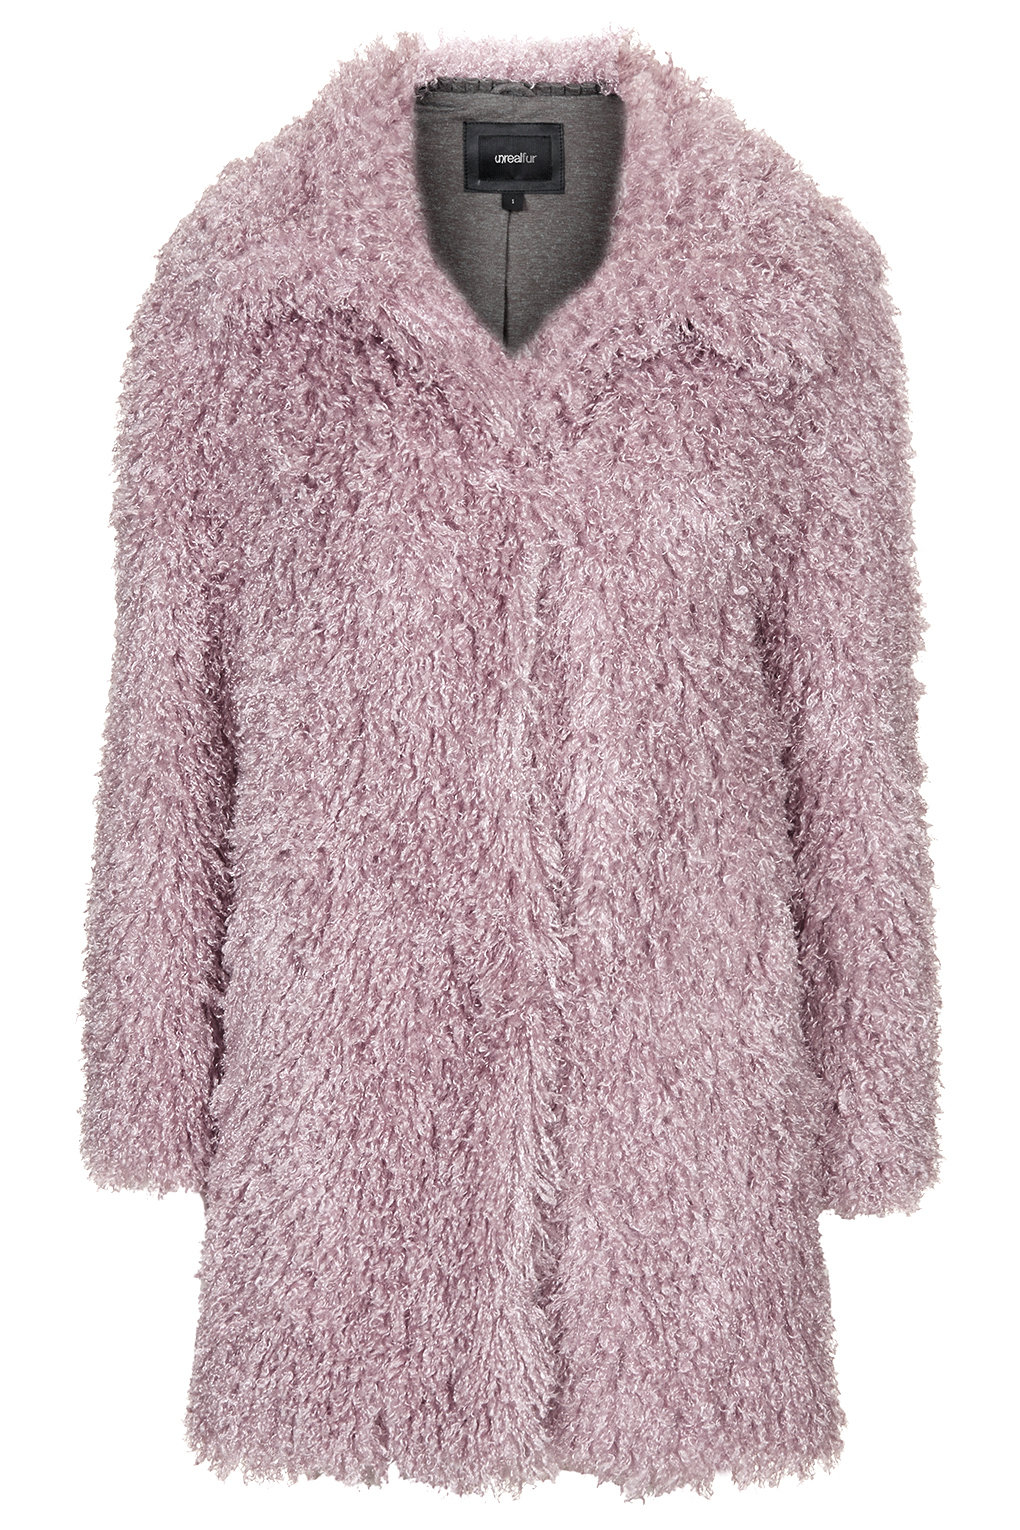 Topshop Pink Fur Coat | Down Coat